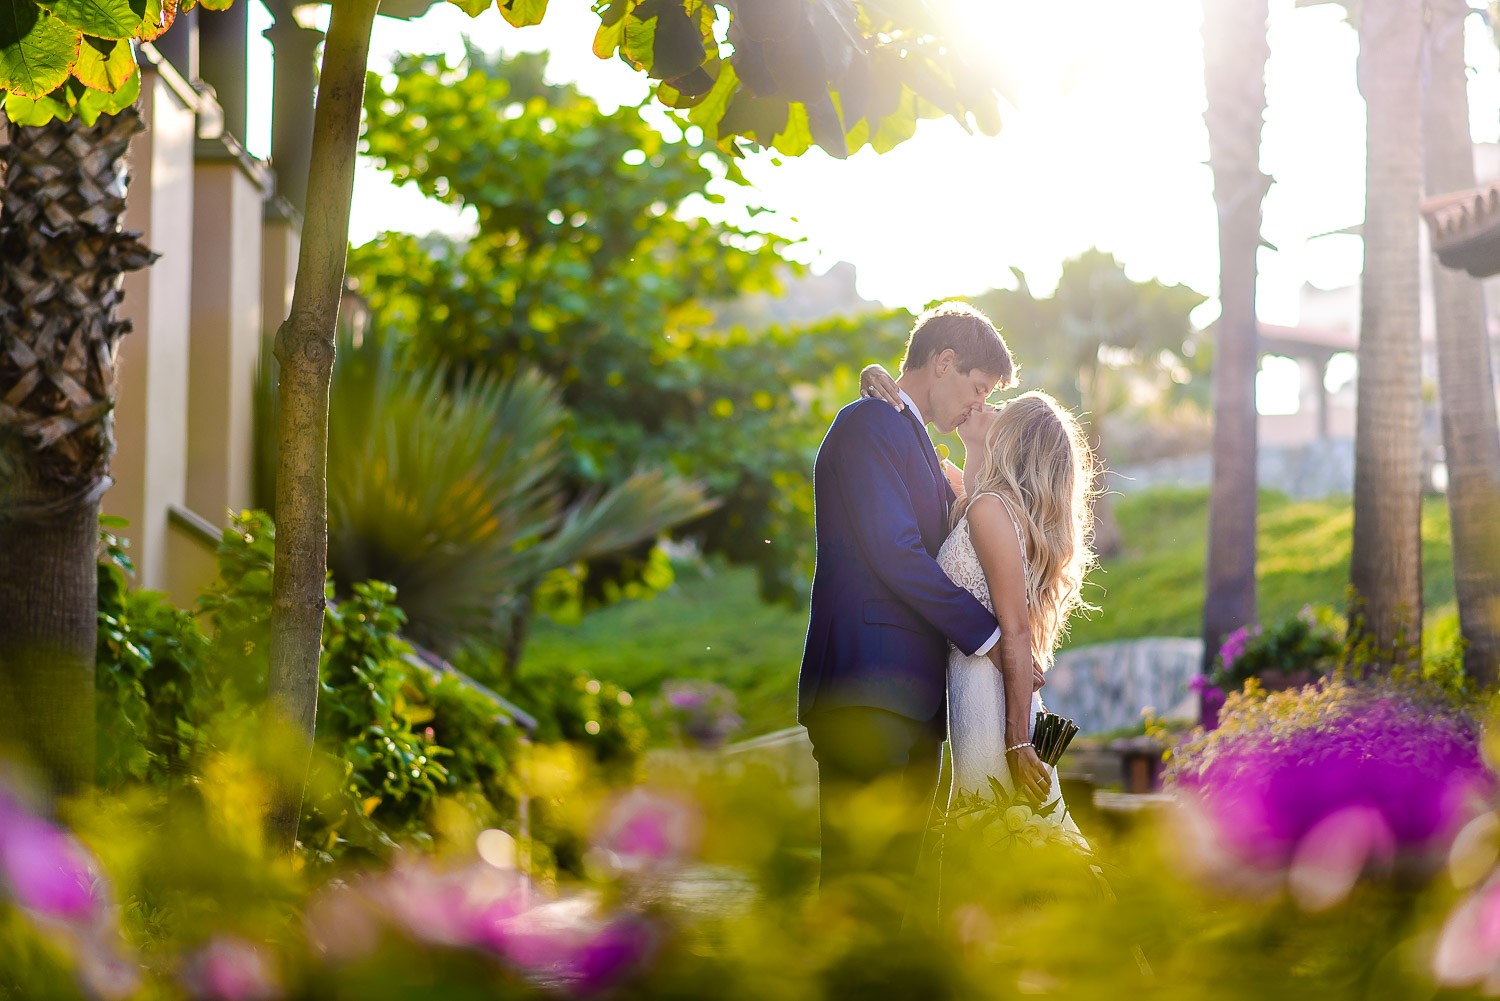 Bride and groom kissing during their photo session with talented GVphotographer at Pueblo Bonito Sunset Beach Los Cabos. GVphotographer is an amazing Los Cabos destination wedding photographer